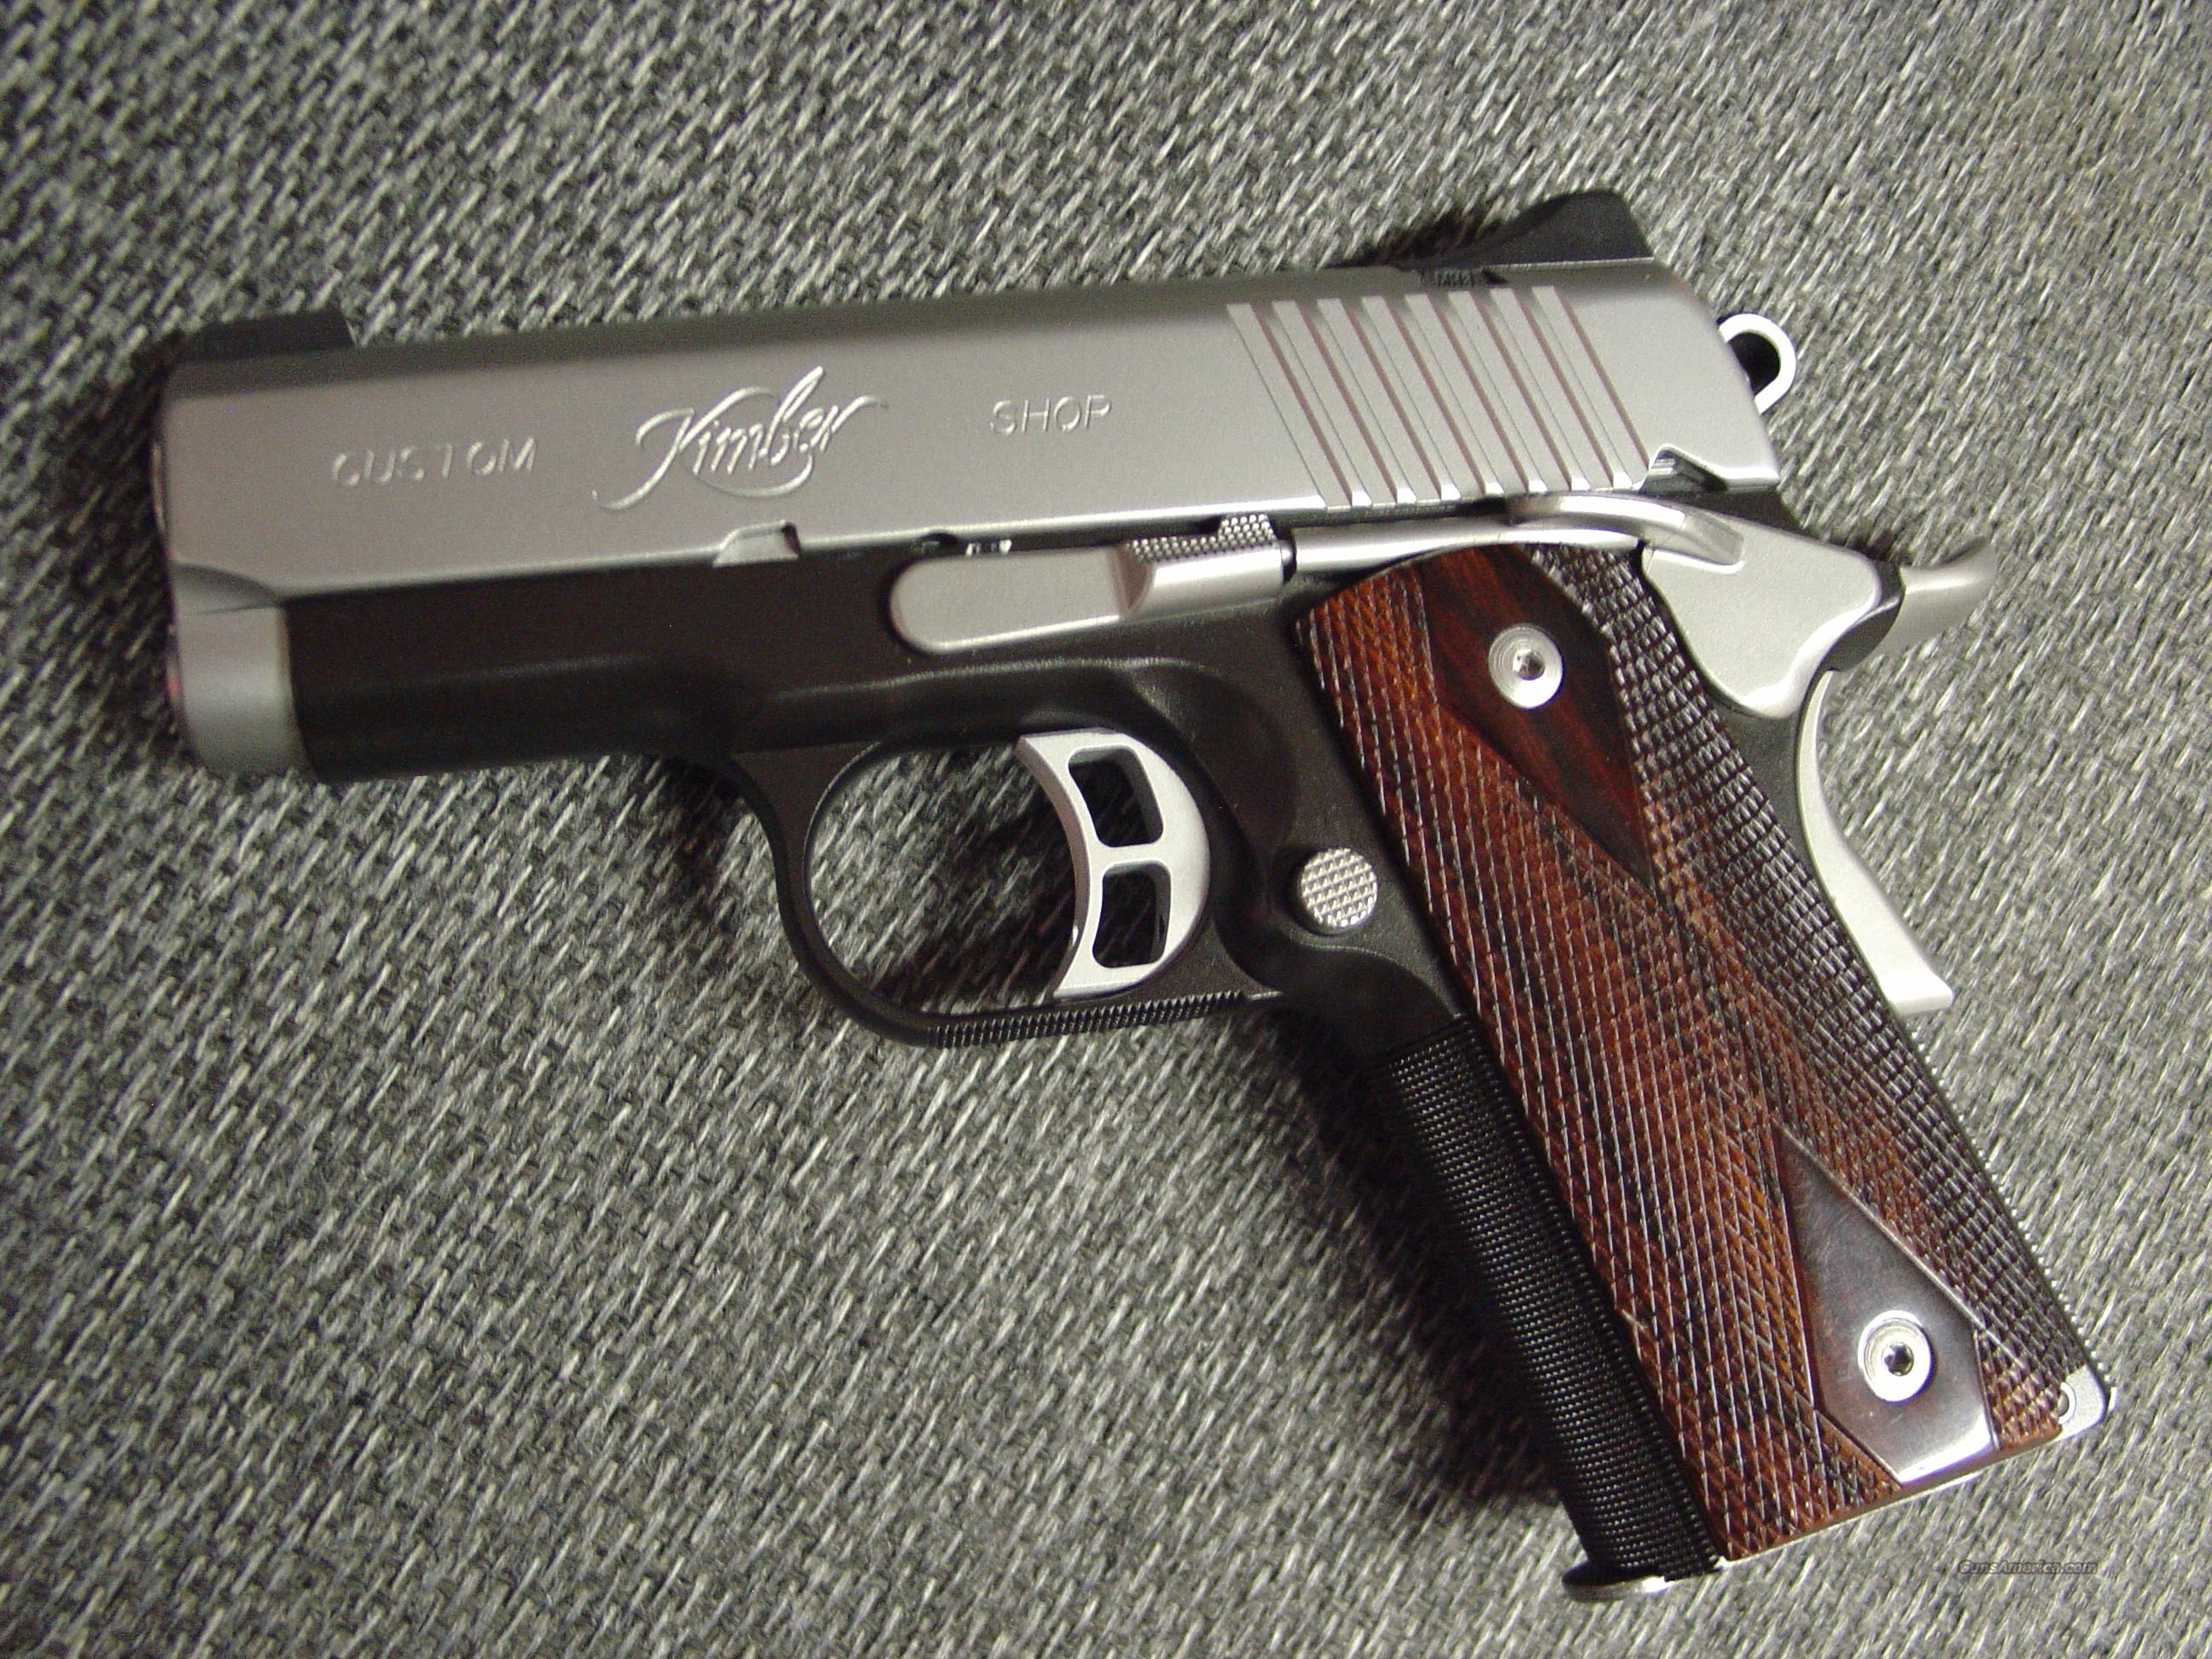 Taurus Wiring Diagram Parts Picturesque Kimber 1911 Colt Custom Shop Ultra Ii Barrel Rosewood Grips Tone Box Manual Possibly Unfired 2592x1944